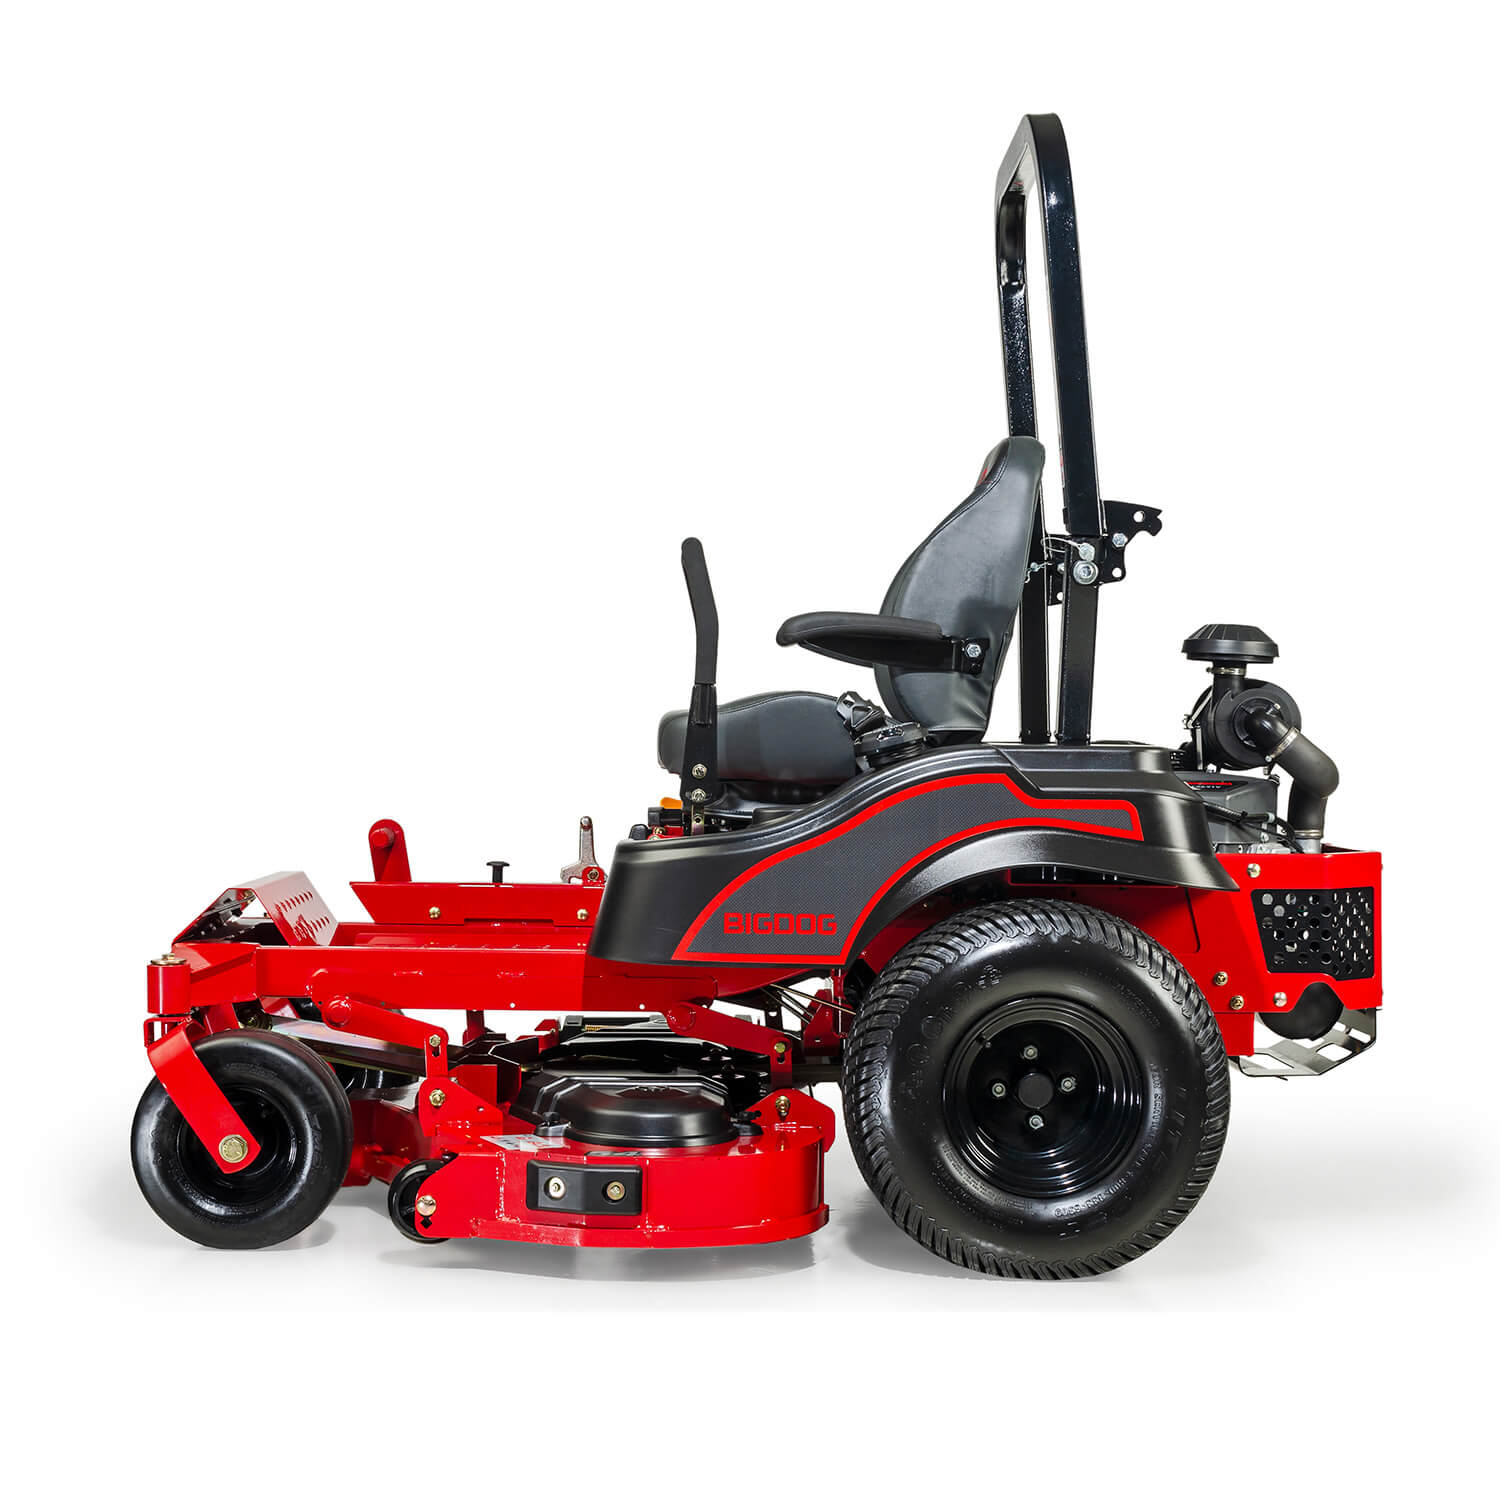 Image of the back of a red riding mower